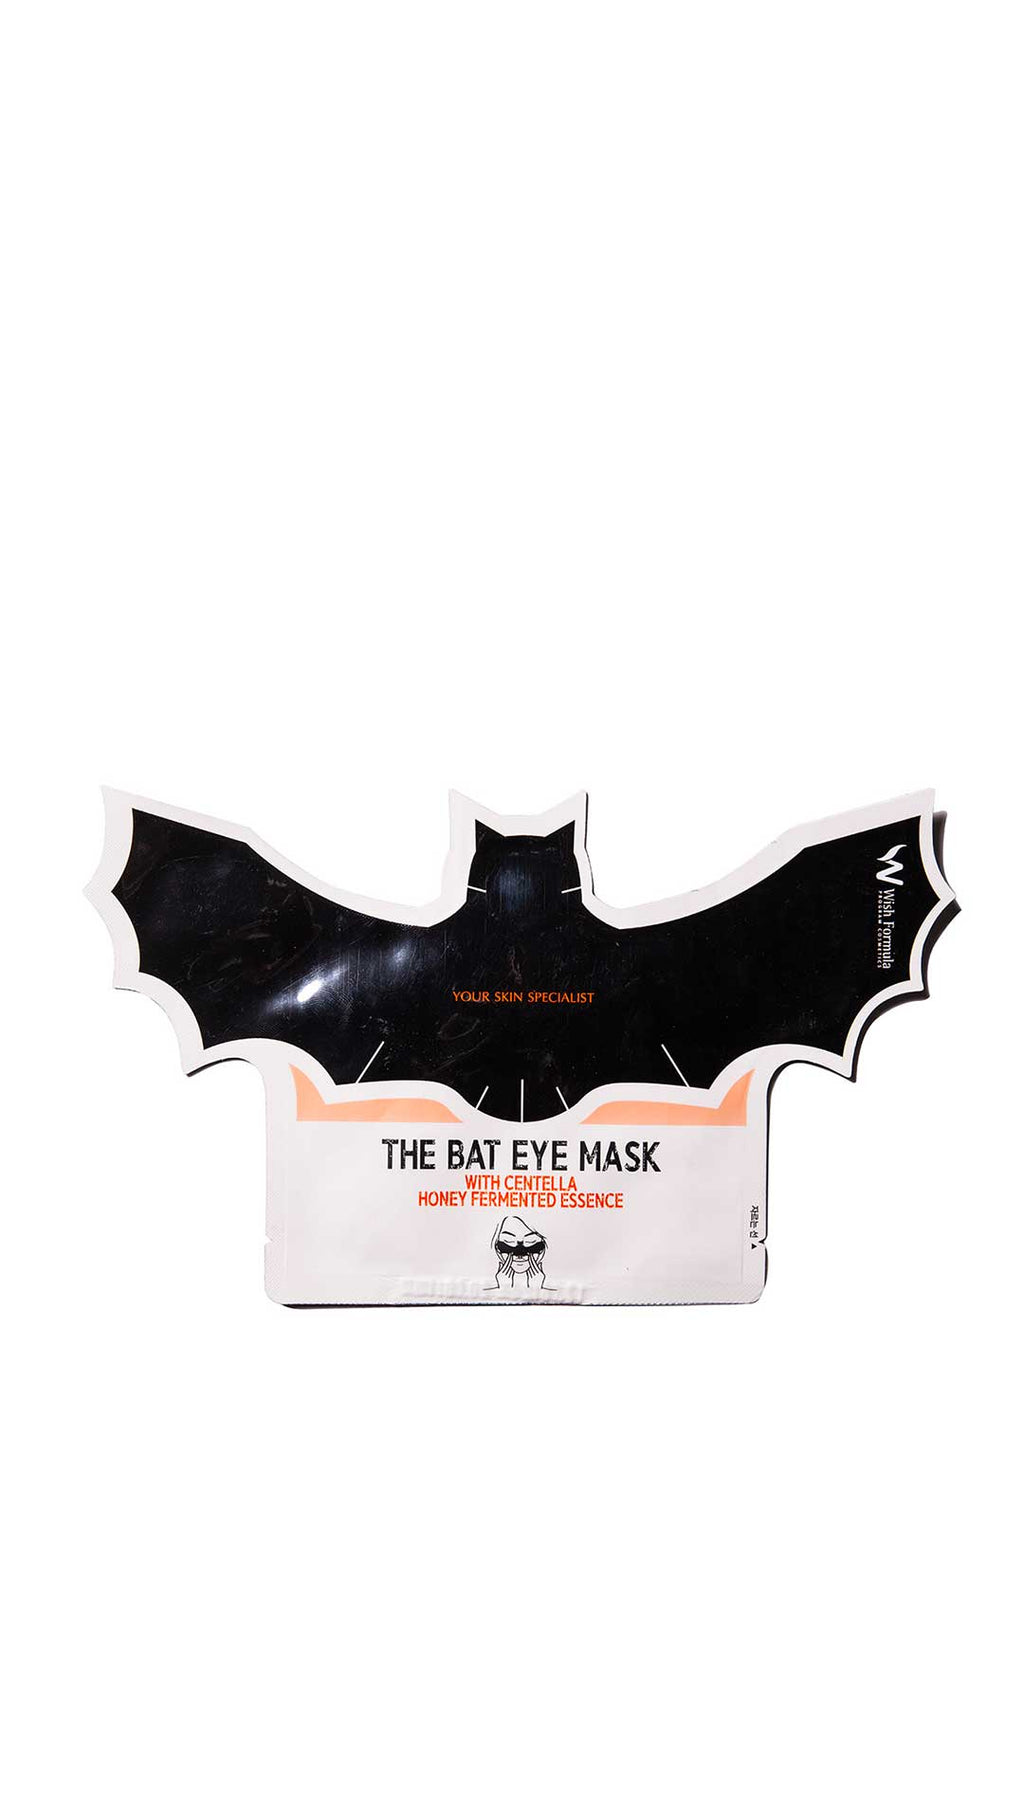 THE BAT EYE MASK LARGE EYE + NOSE ANTI-AGING MASK